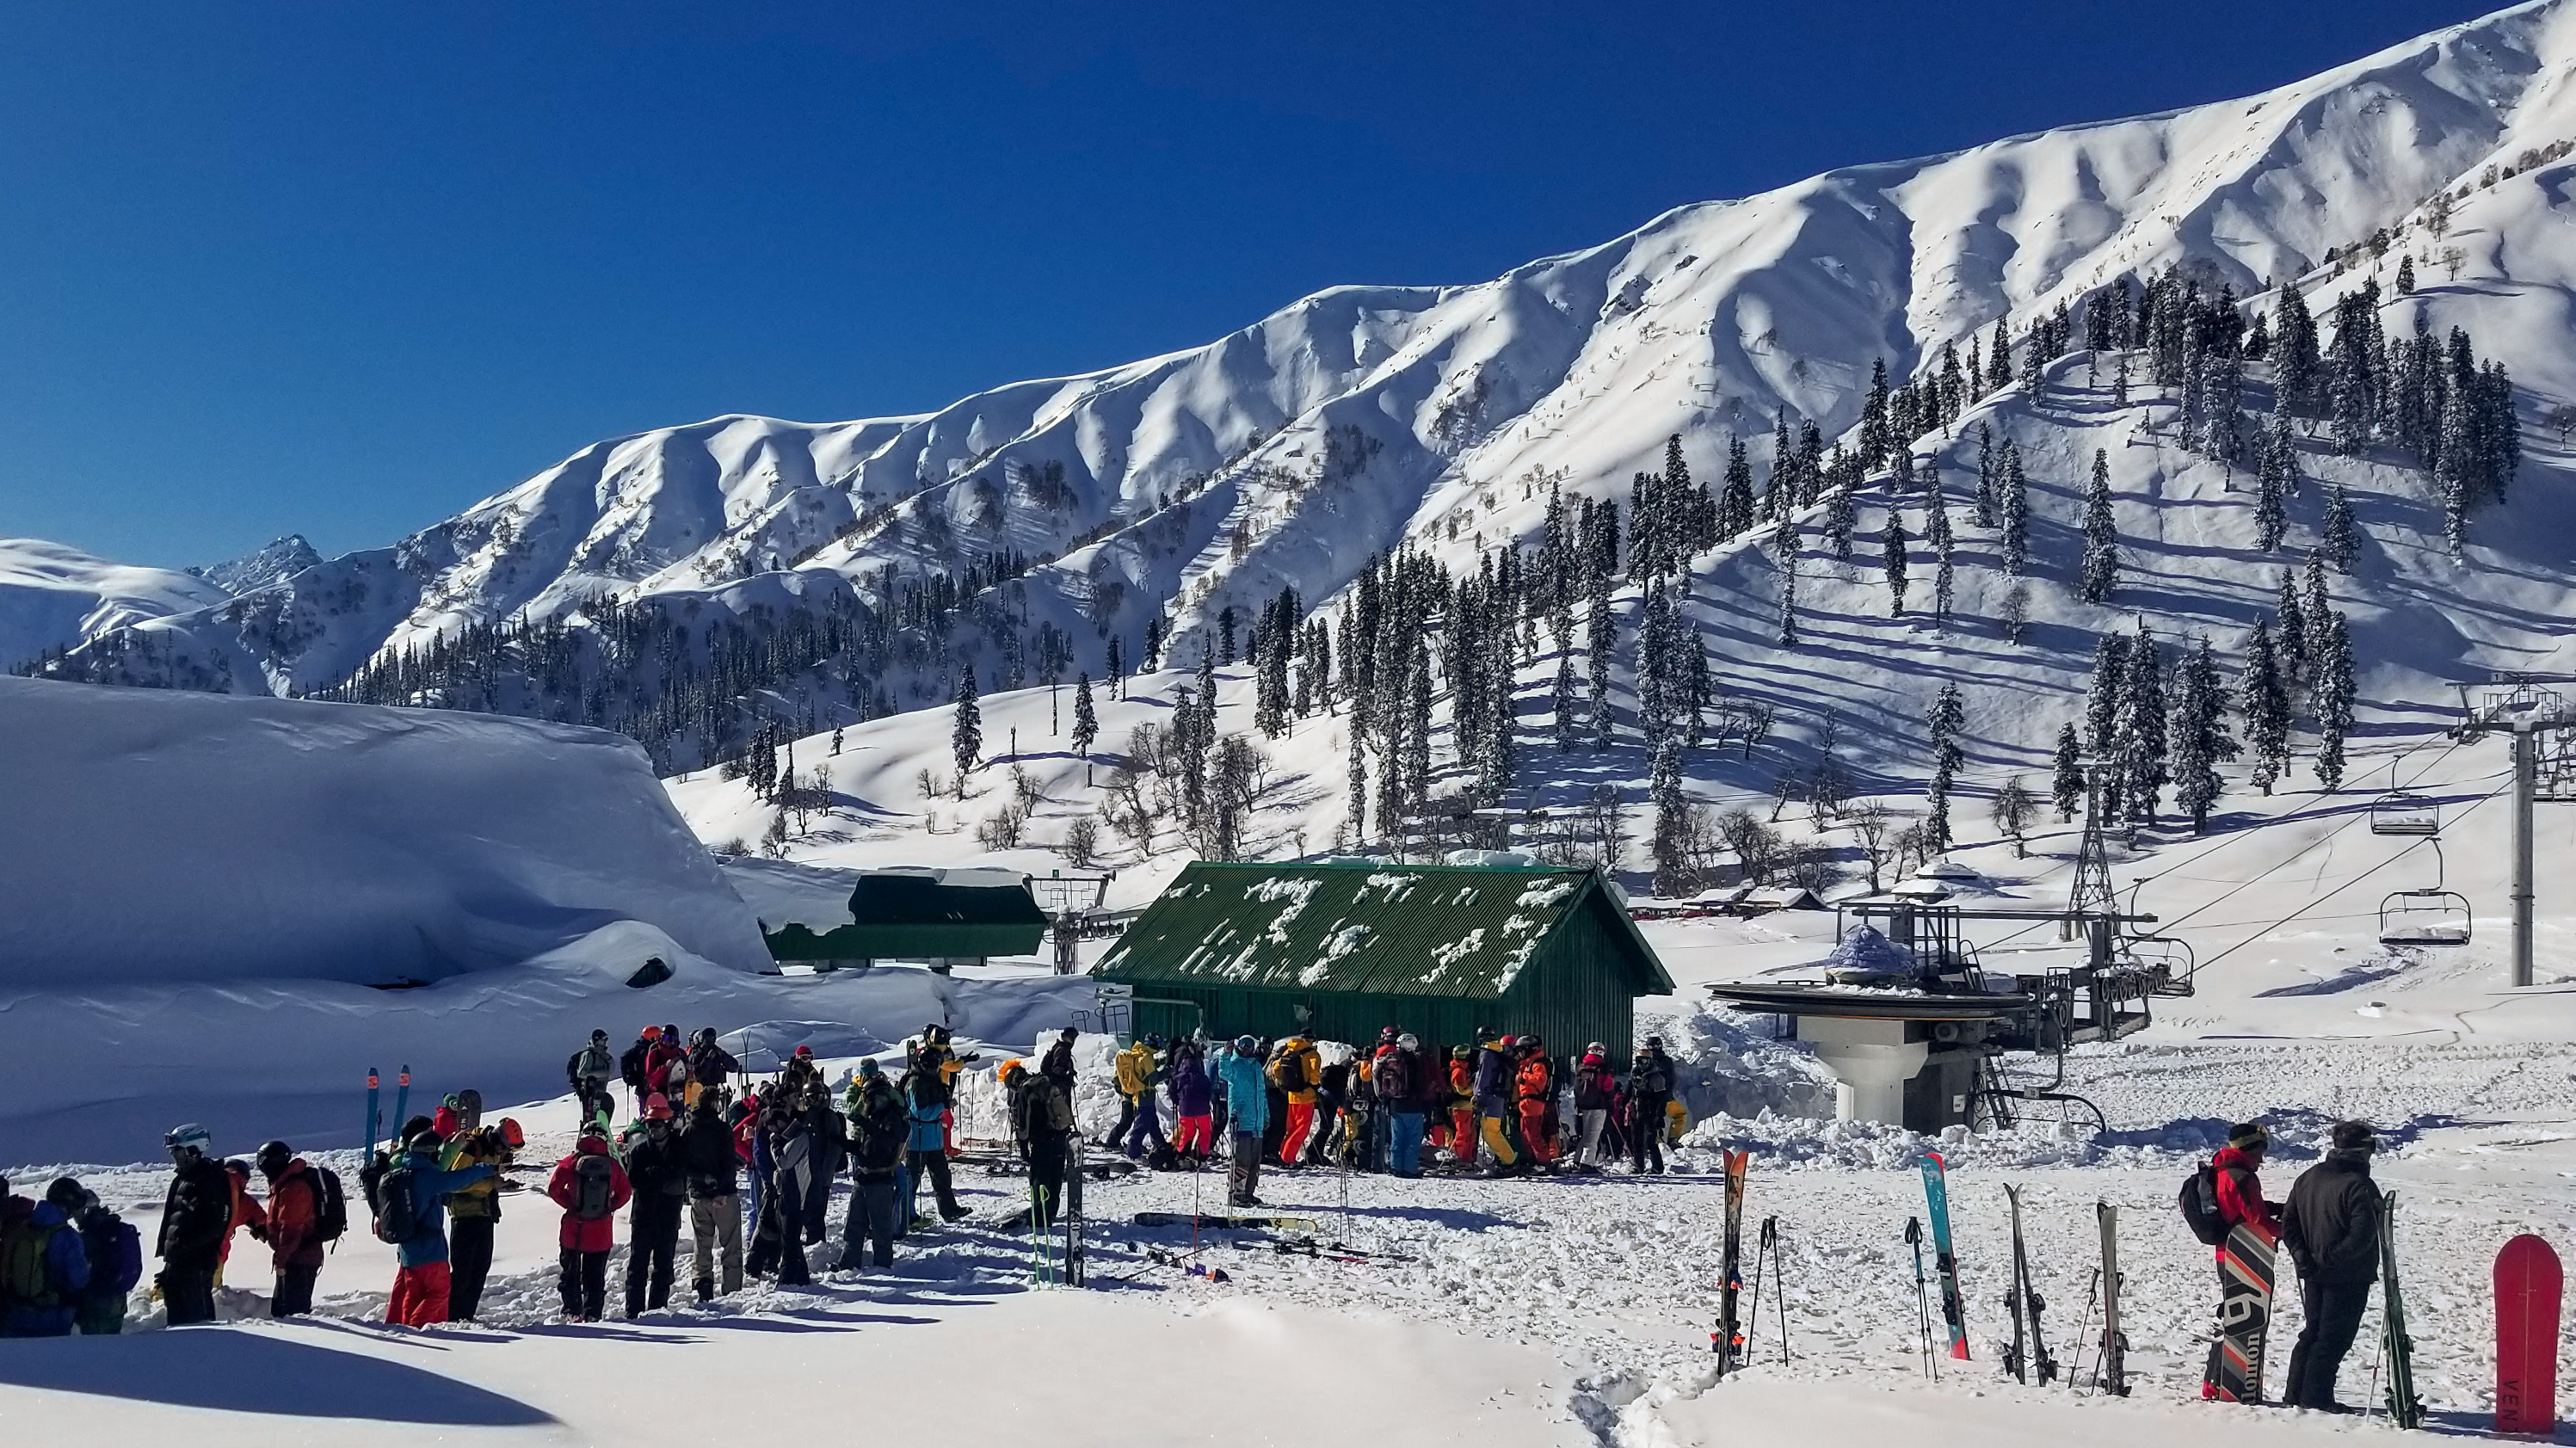 Surrounded By Military Barracks Skiers Shred The Himalayan Slopes Of Indian Kashmir Kpbs